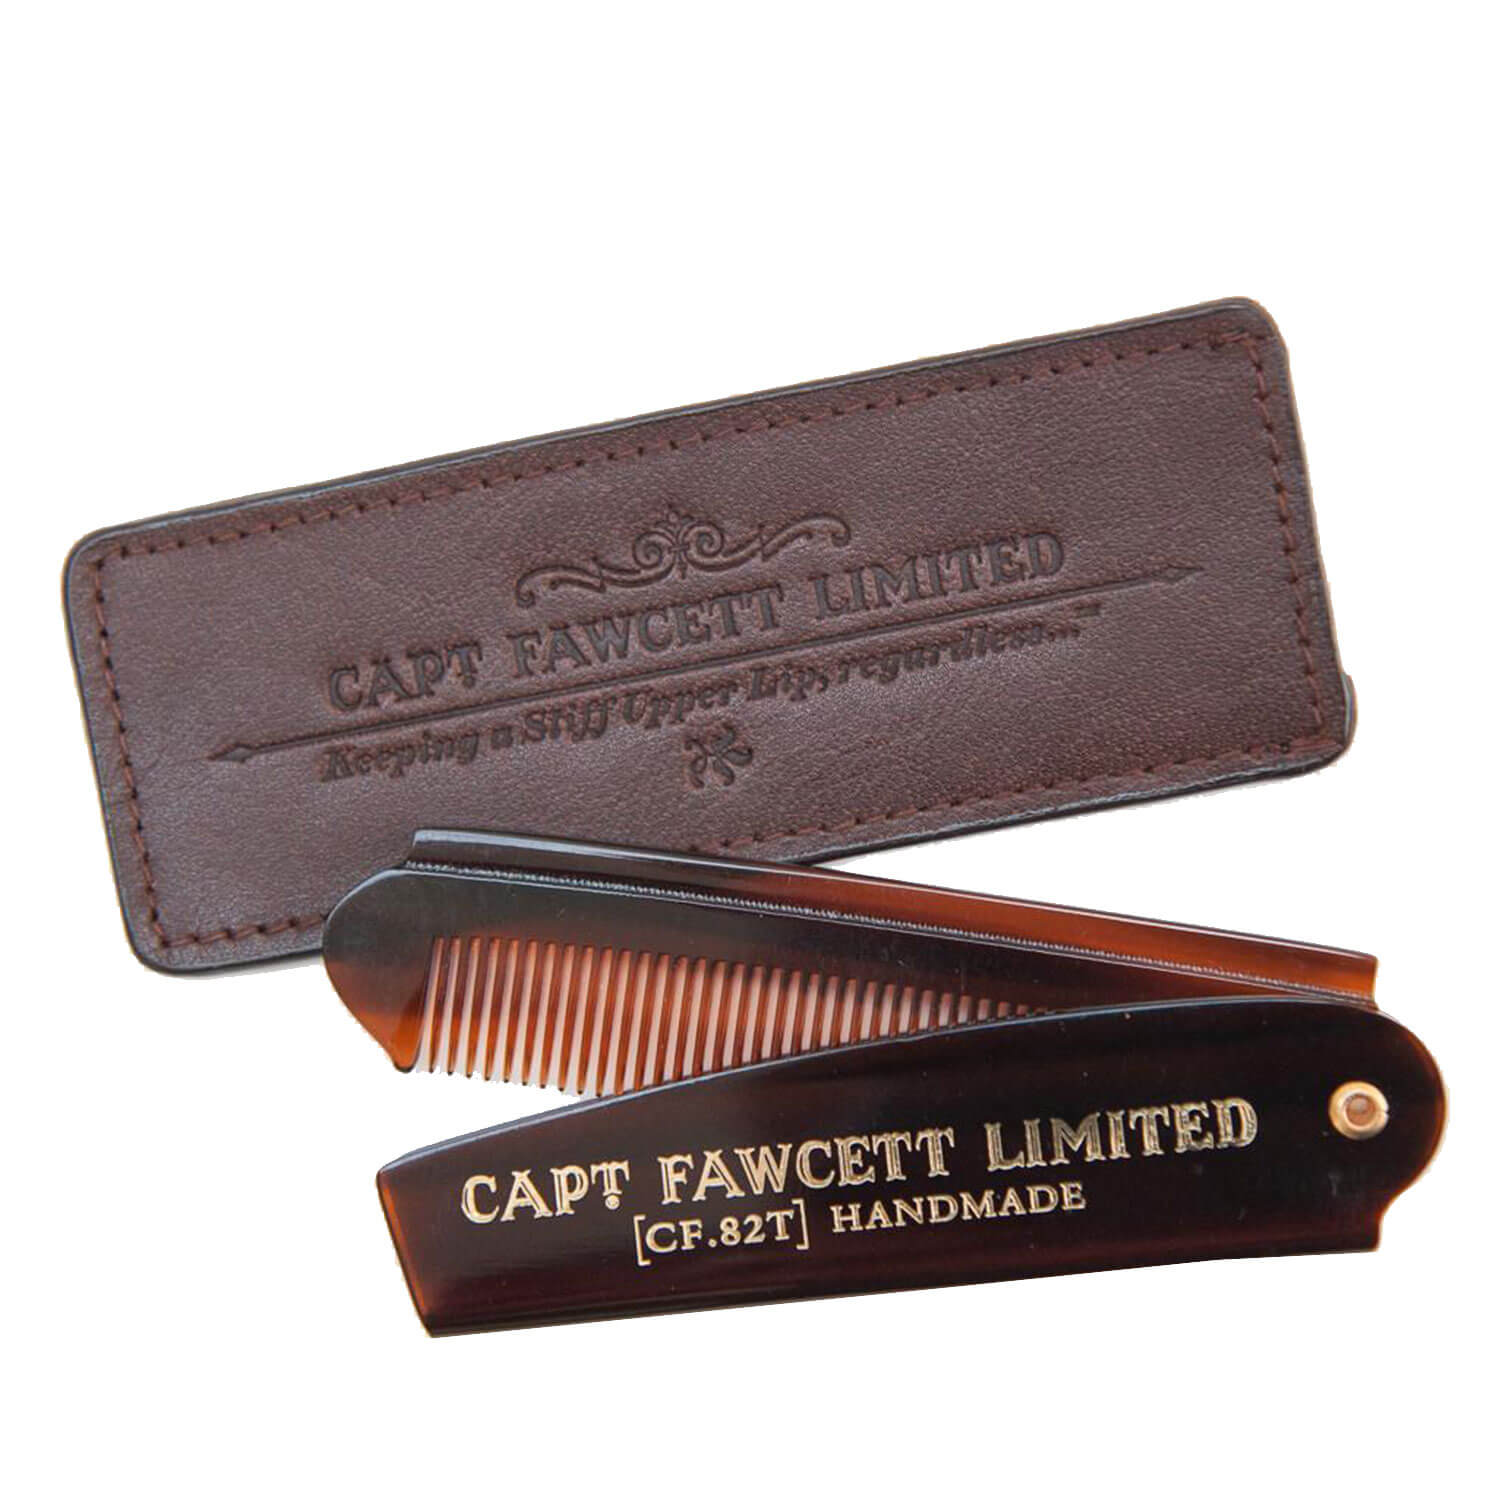 Capt. Fawcett Tools - Folding Pocket Beard Comb with Leather Case -